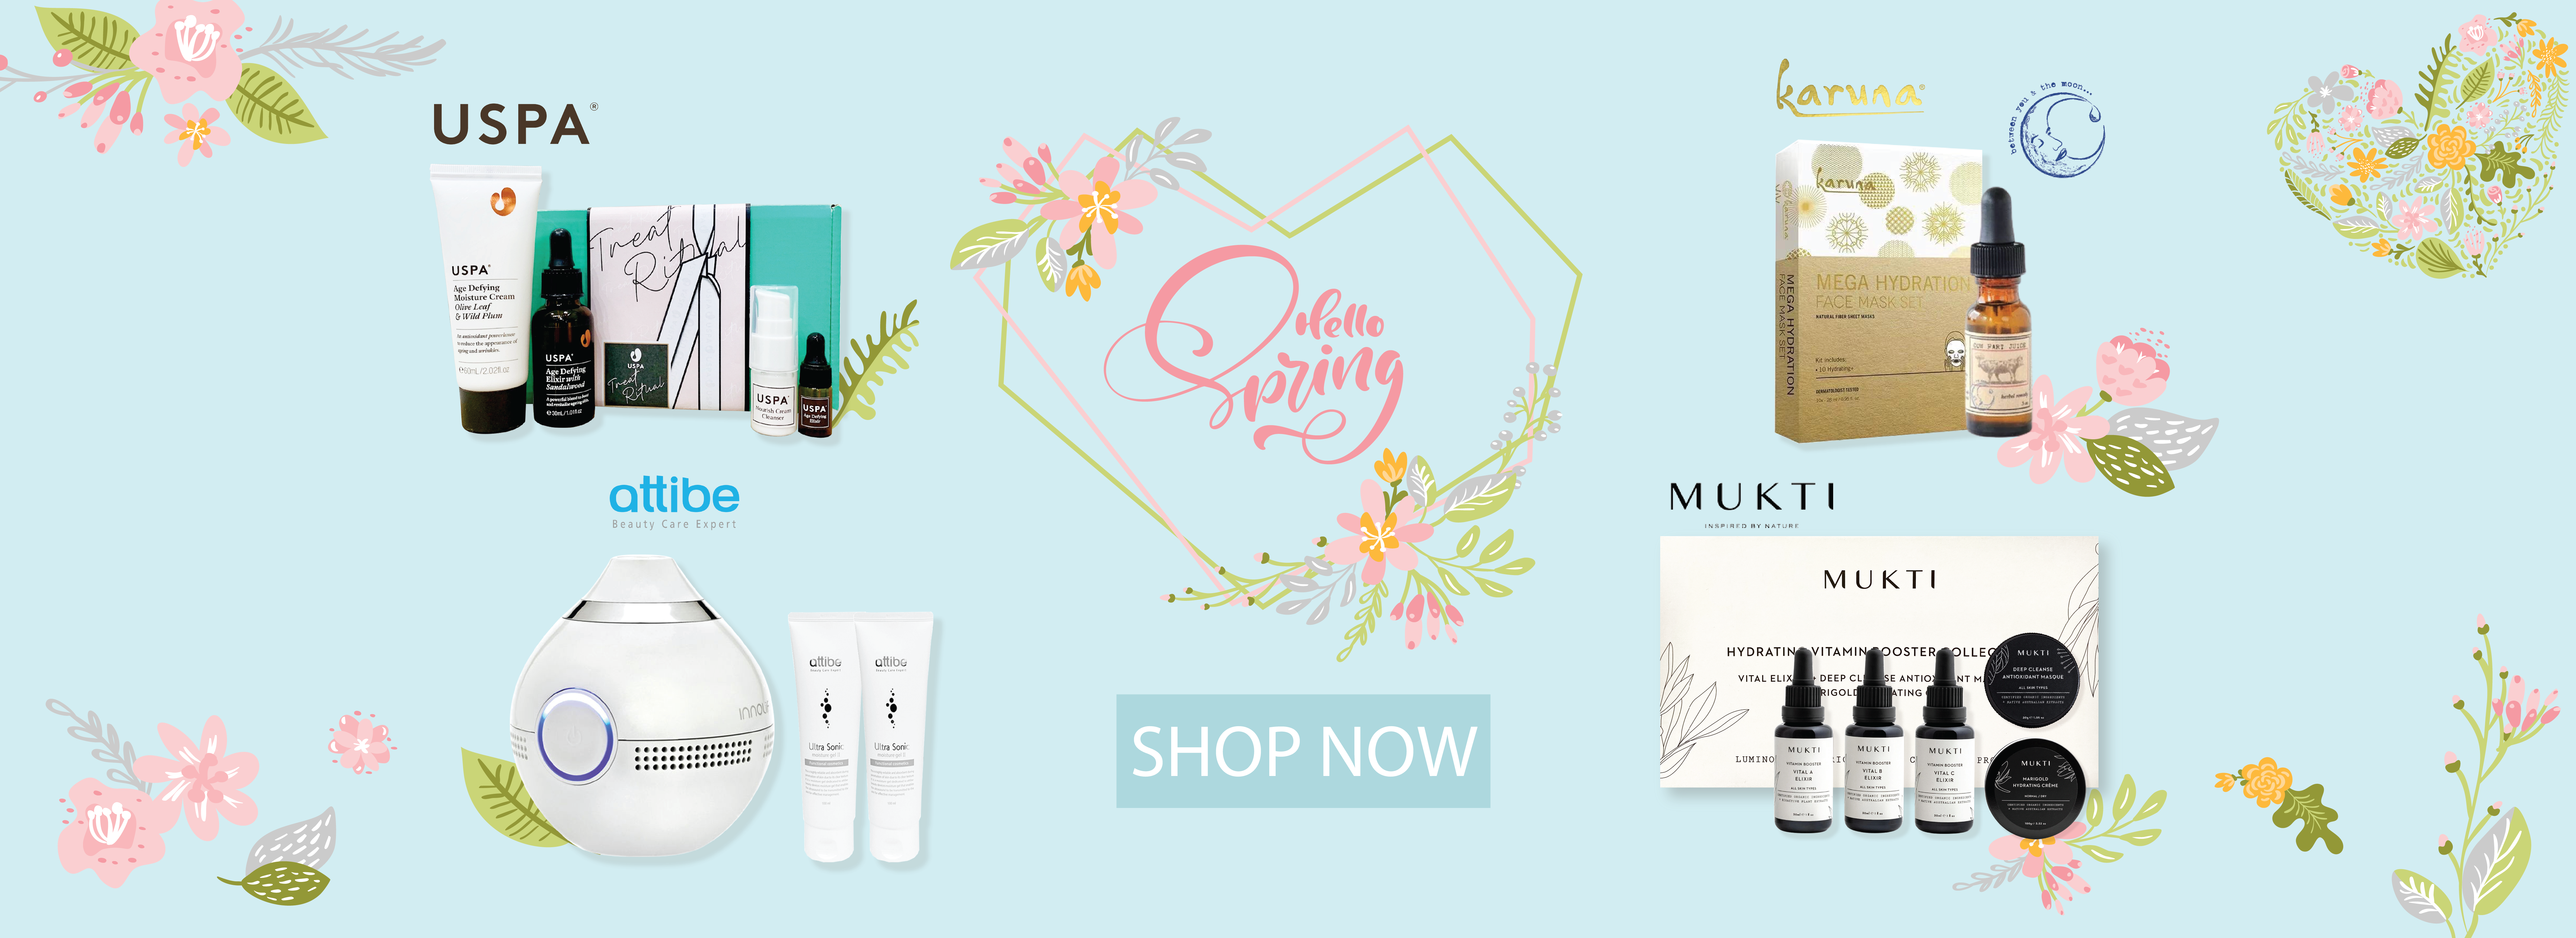 OhMart Beauty, Fashion, Lifestyle, Organic Skincare, Natural Makeup - Curated by OhMart 1